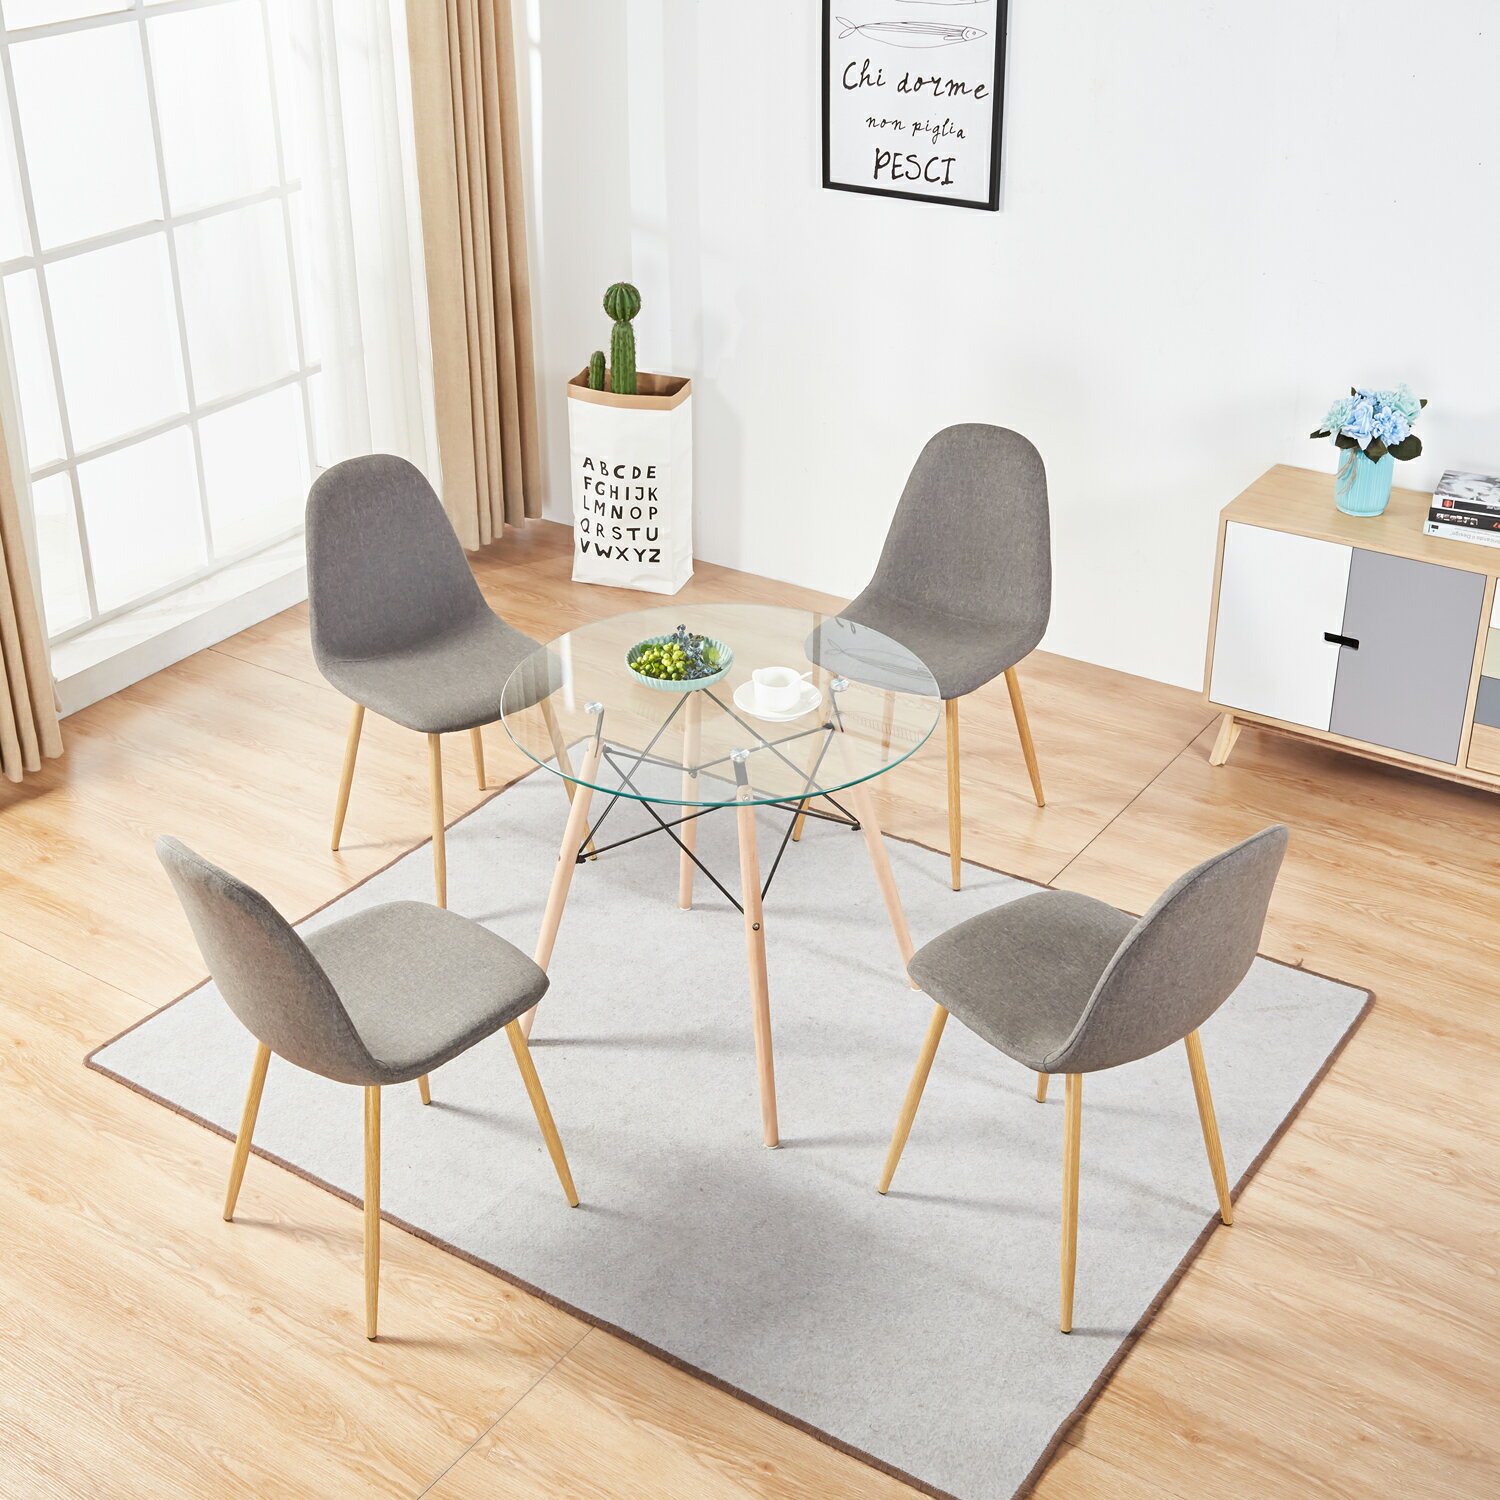 Mcombo Mcombo Dining Side Chairs Set Of 4 Dining Table Round